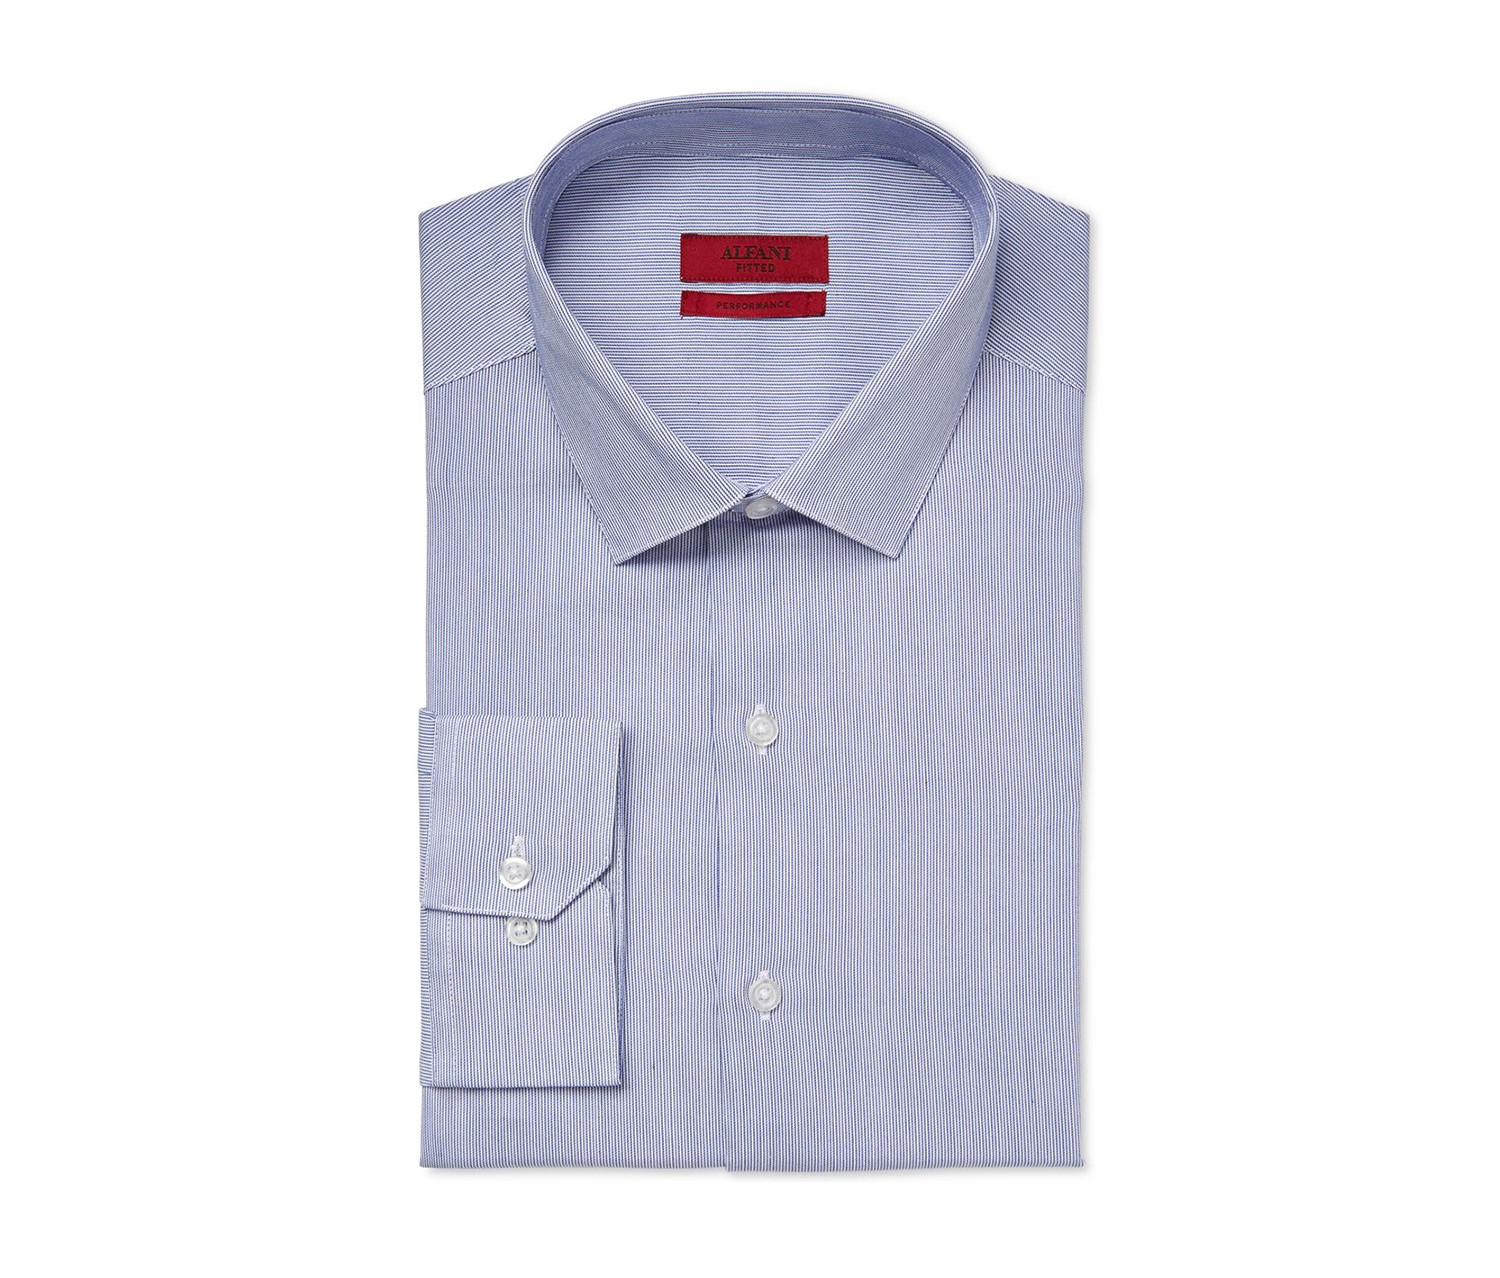 77d55a83a Alfani Red White Dress Shirt - DREAMWORKS